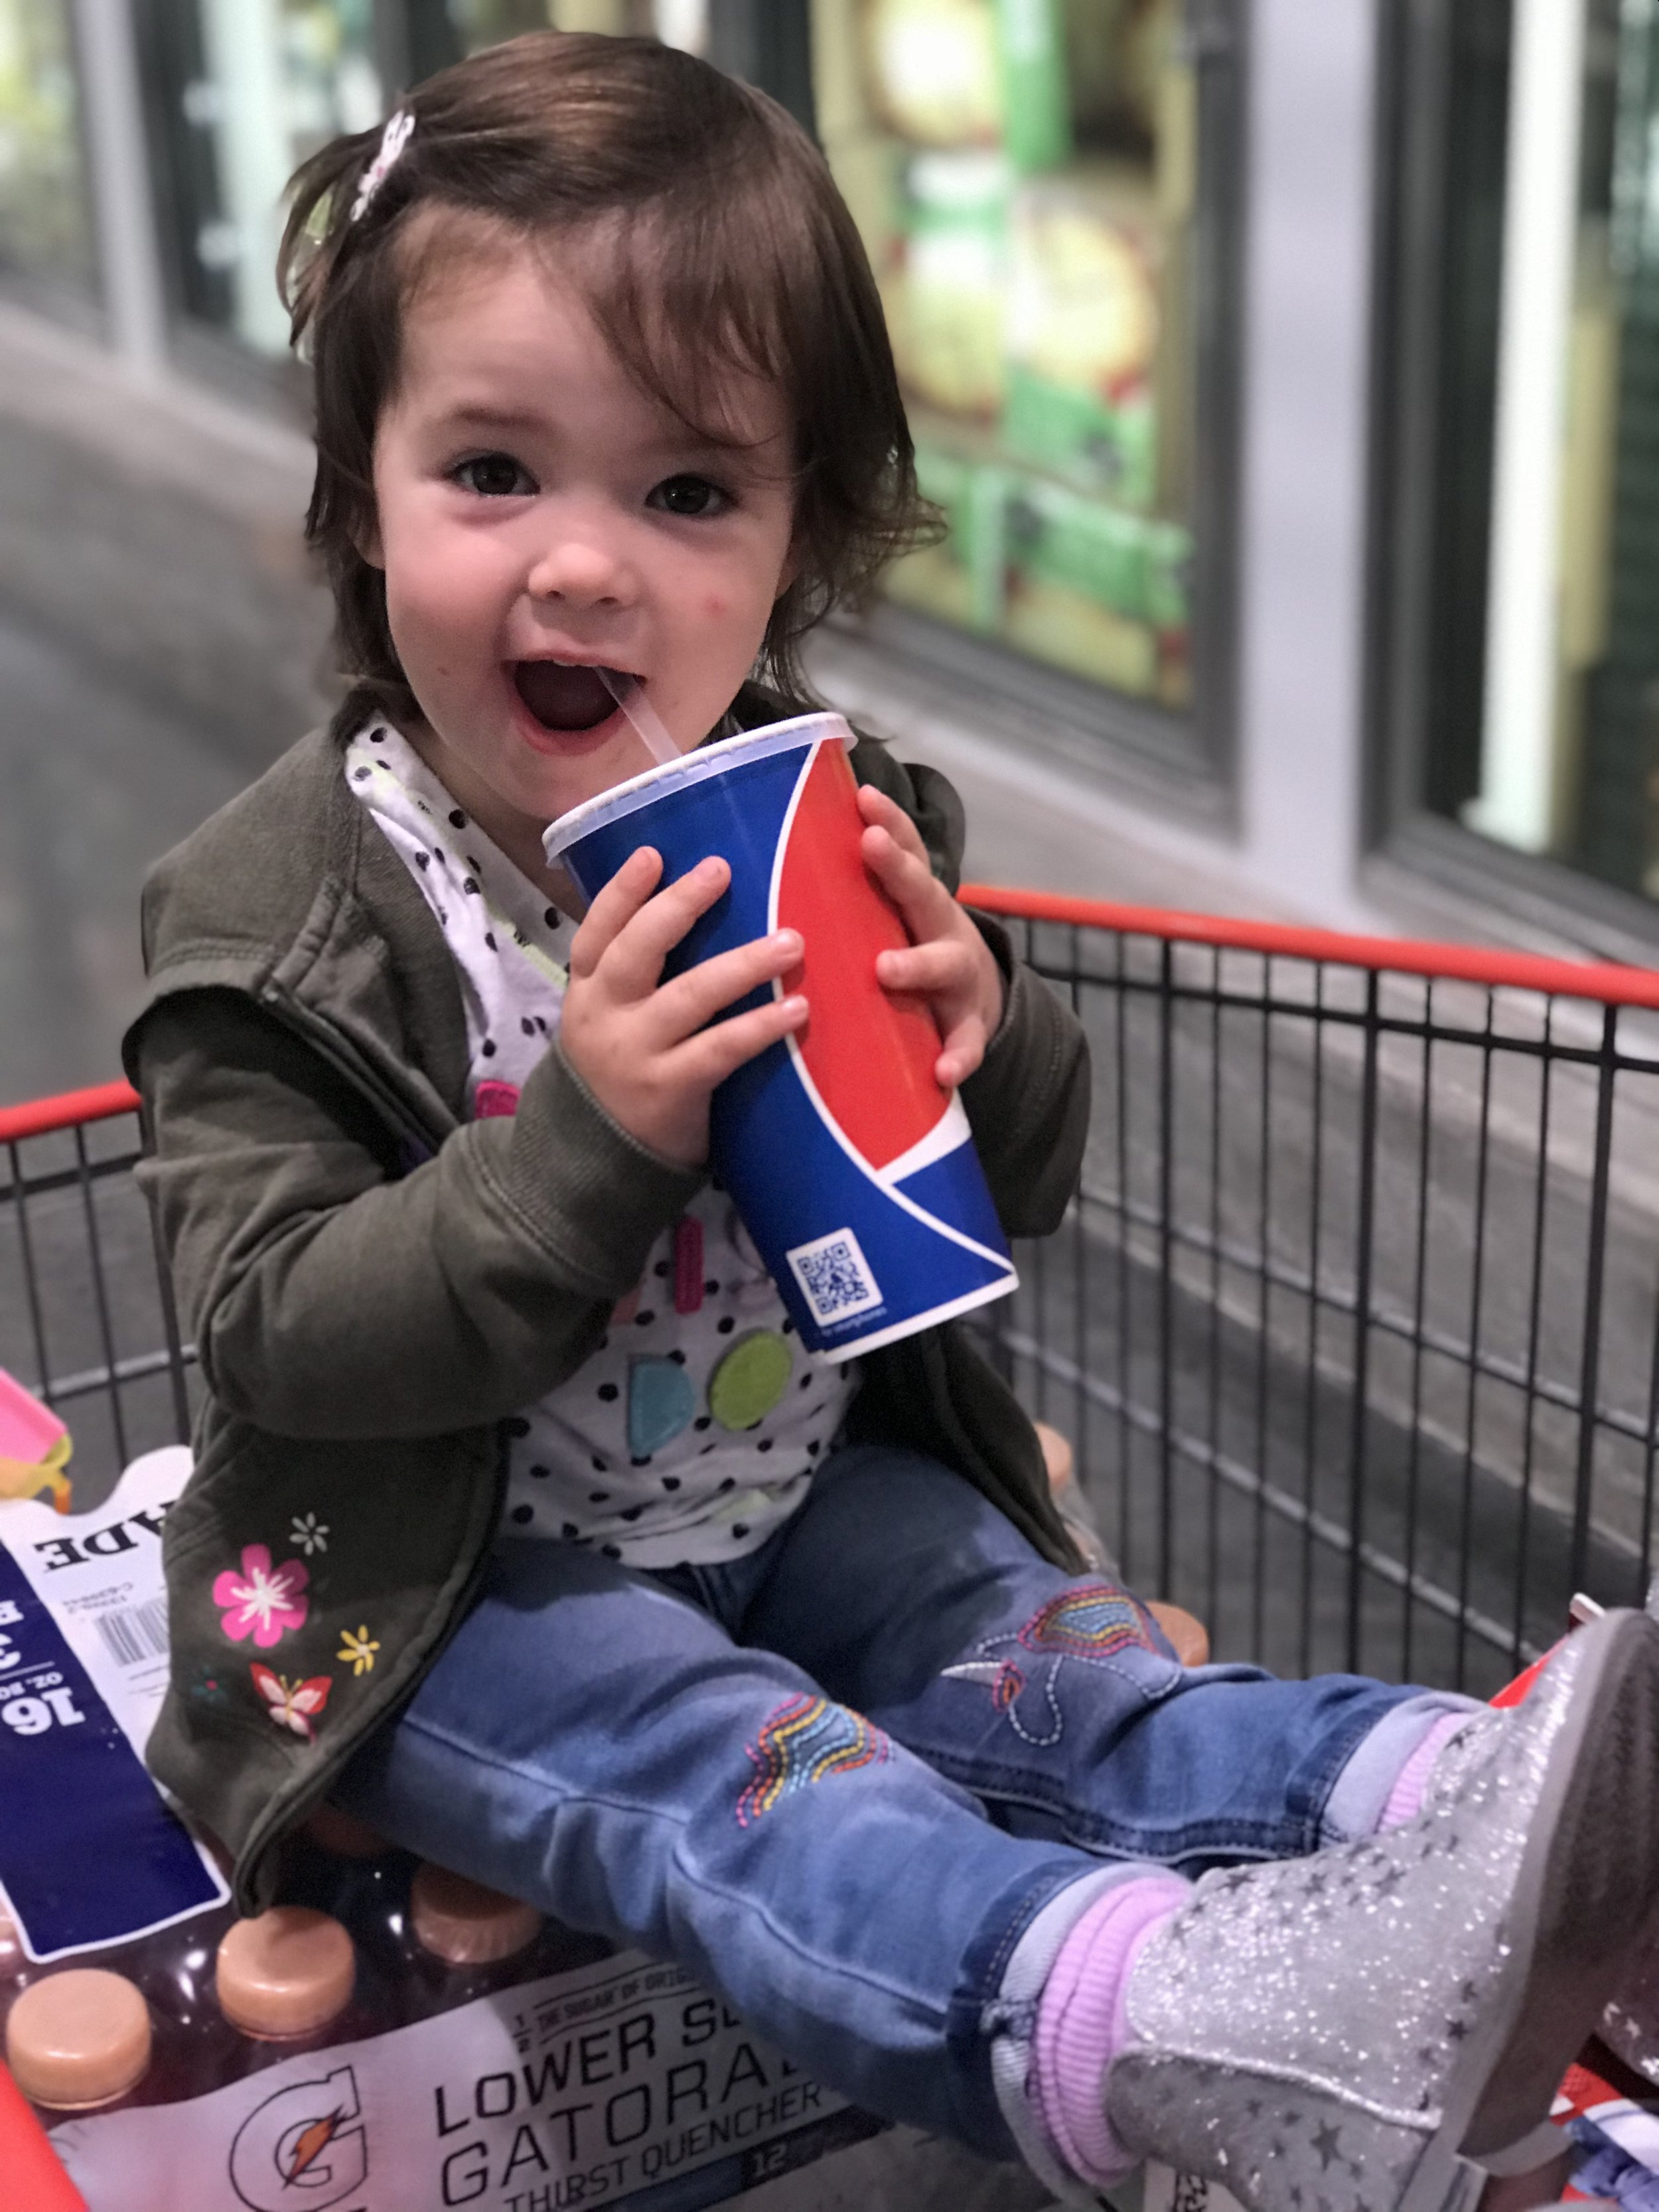 Costco Trip with her favorite sparkle boots (from Target, as she will tell you)